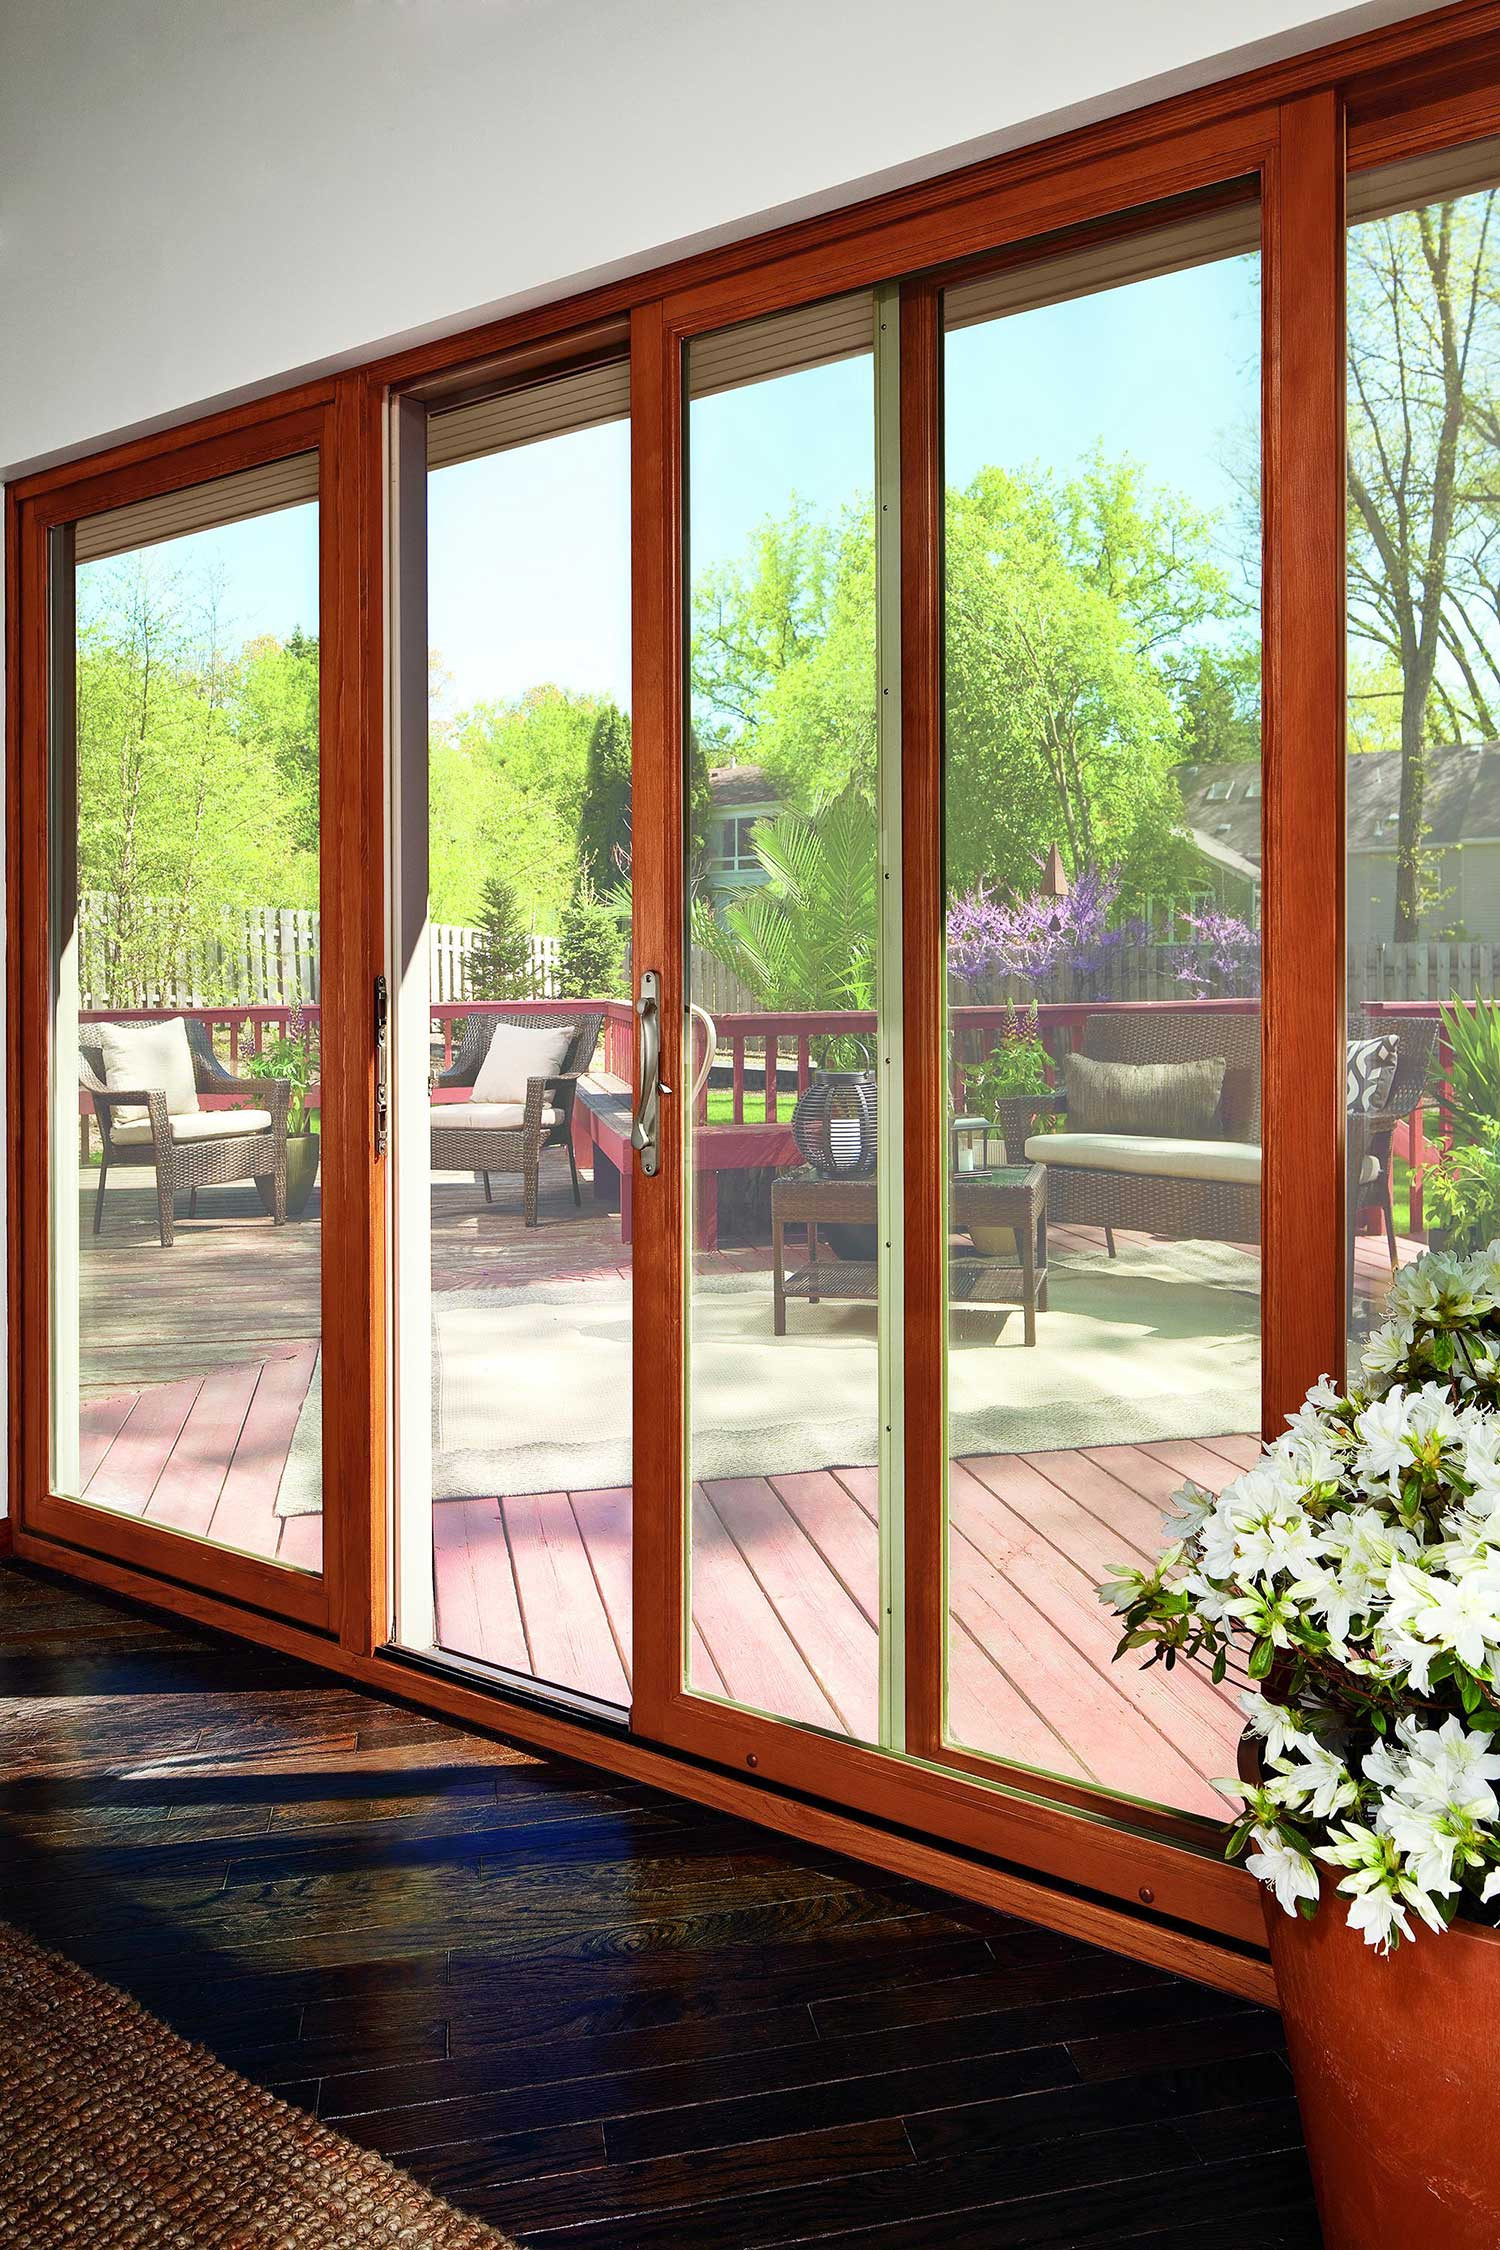 Best ideas about Marvin Patio Doors . Save or Pin Gallery Elmsford NY Now.